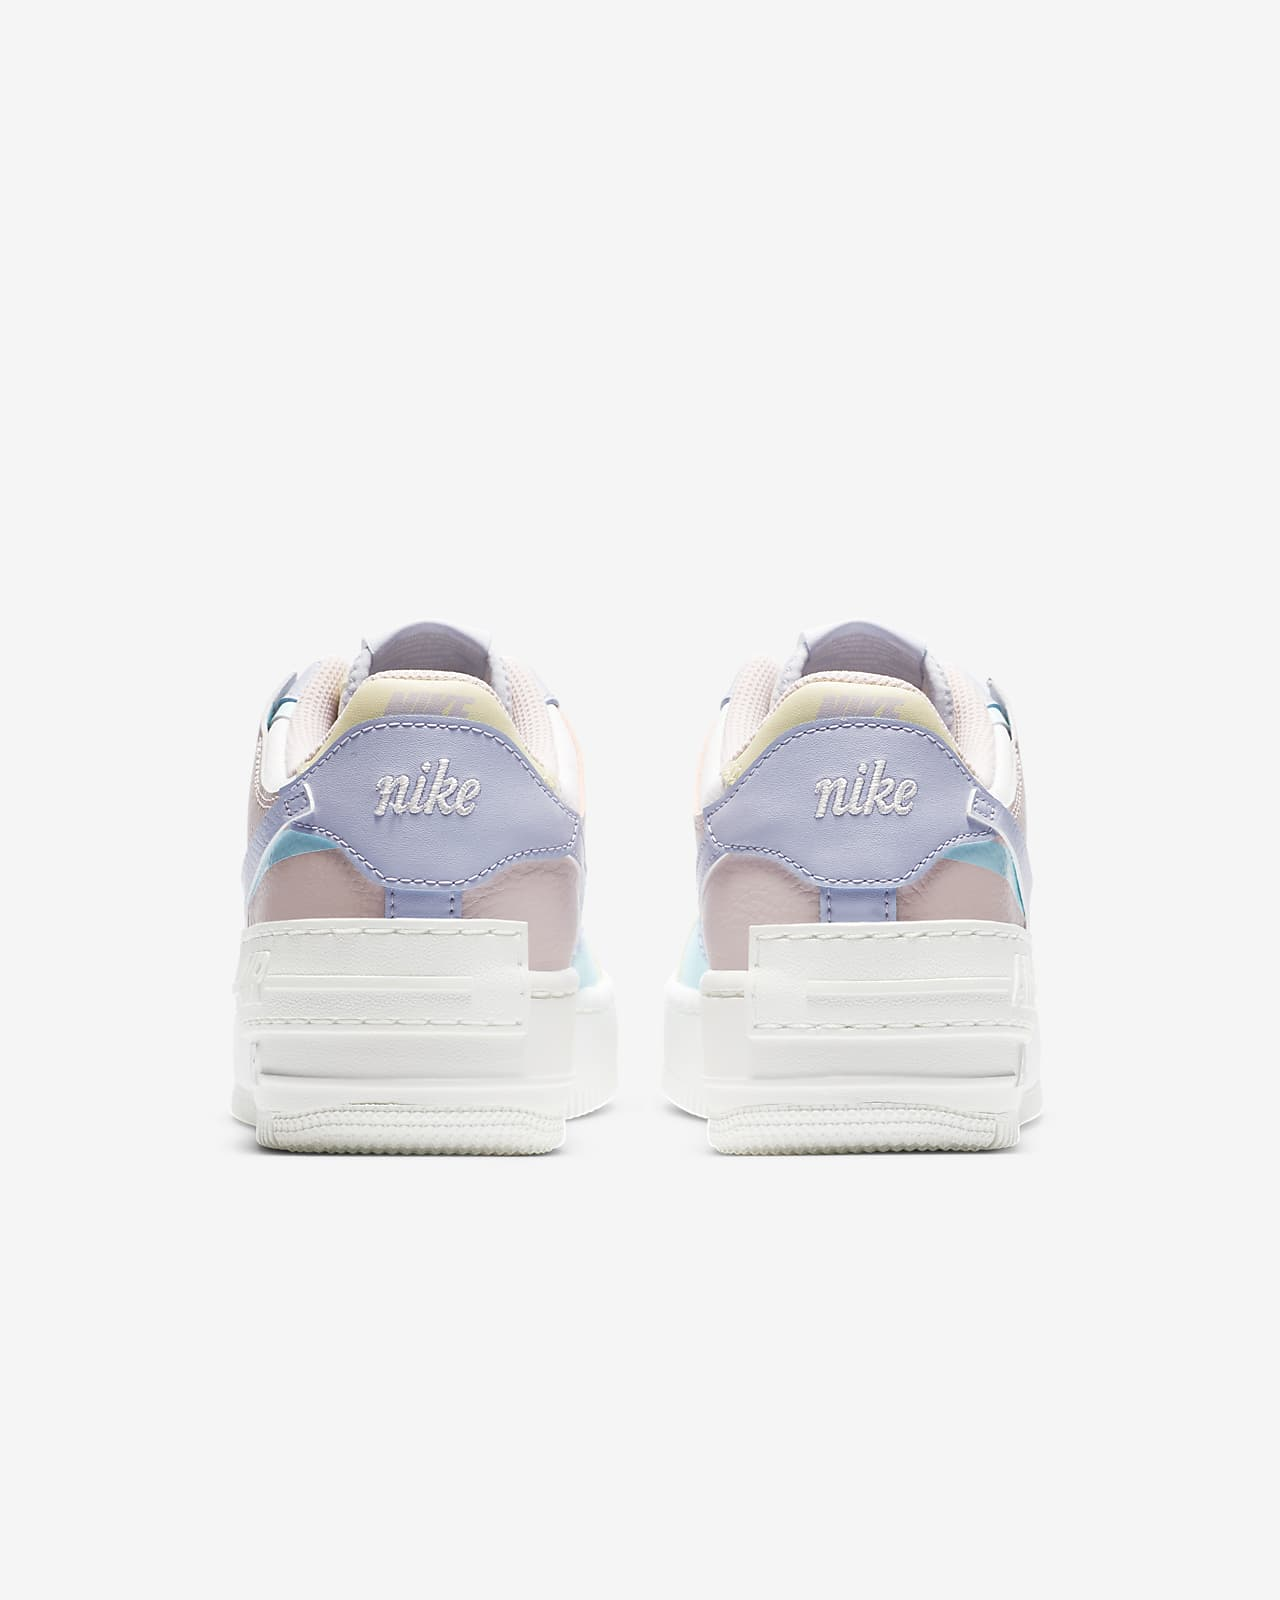 Nike Air Force 1 Shadow Women S Shoe Nike Com The nike air force shadow was initially designed to be a performance basketball shoe, to be worn on hardcourt and with features to help athletes grab air and improve movement. nike air force 1 shadow women s shoe